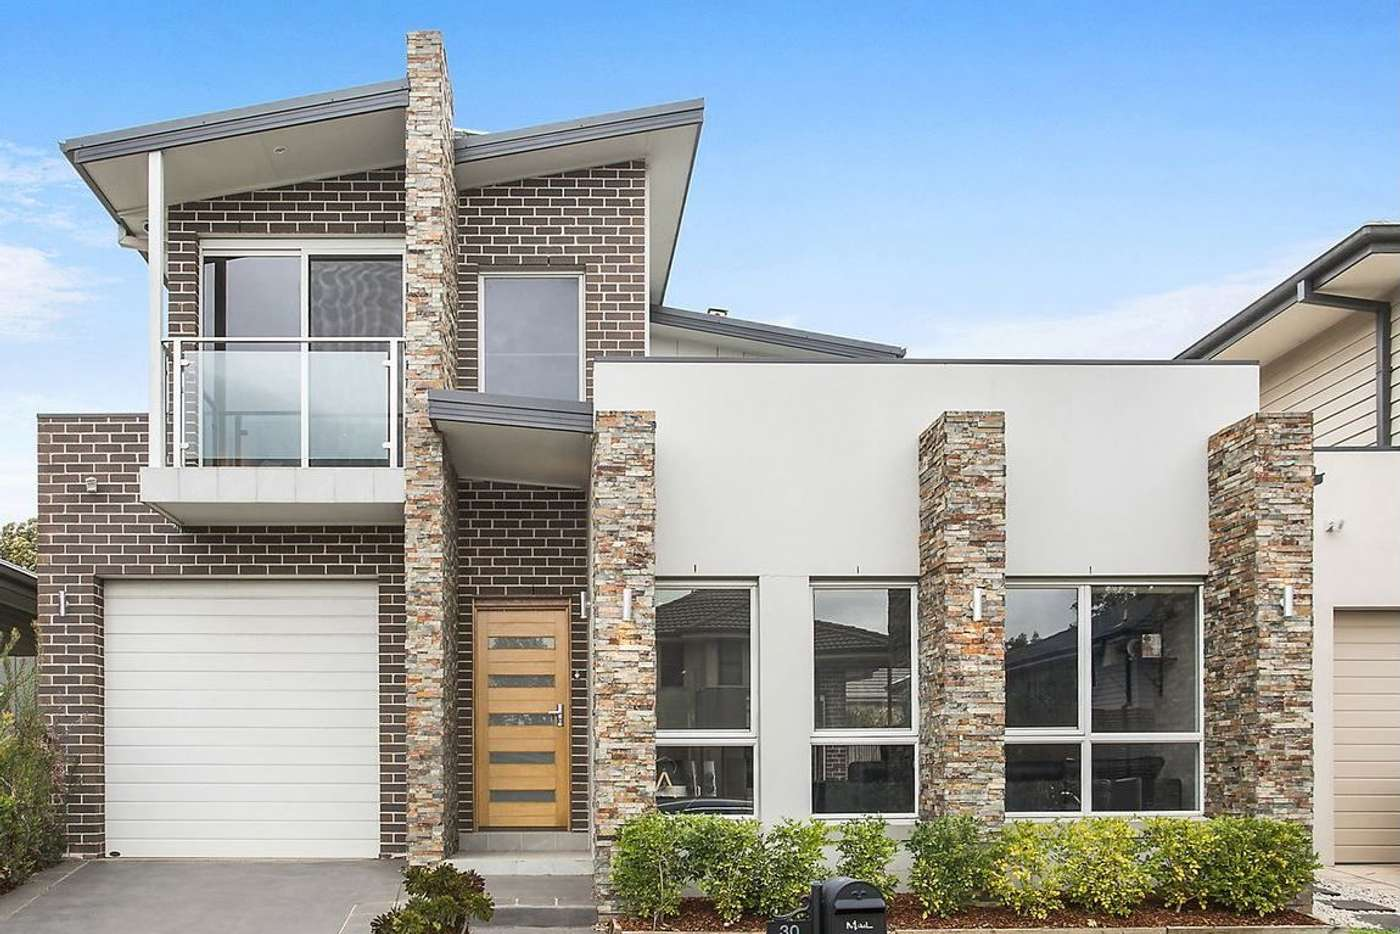 Main view of Homely house listing, 30 Holly Street, Rouse Hill NSW 2155